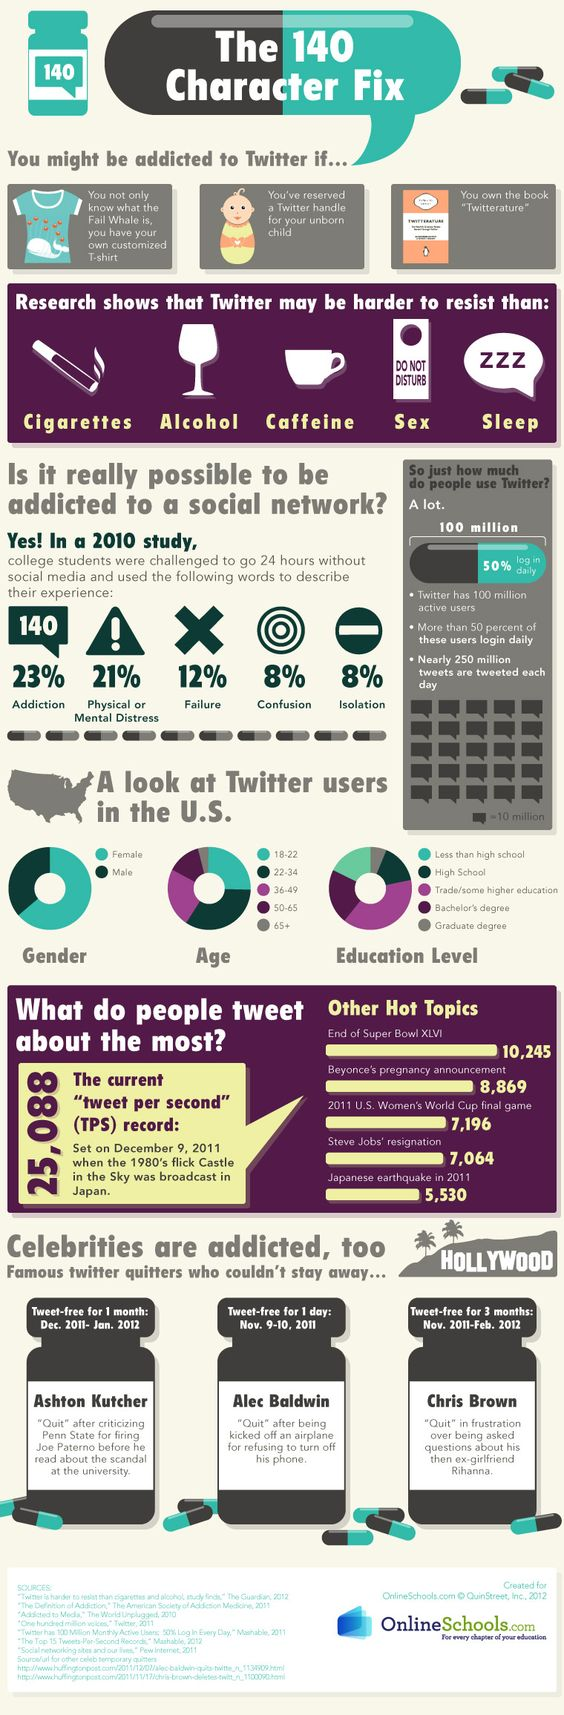 Are you addicted to Twitter?